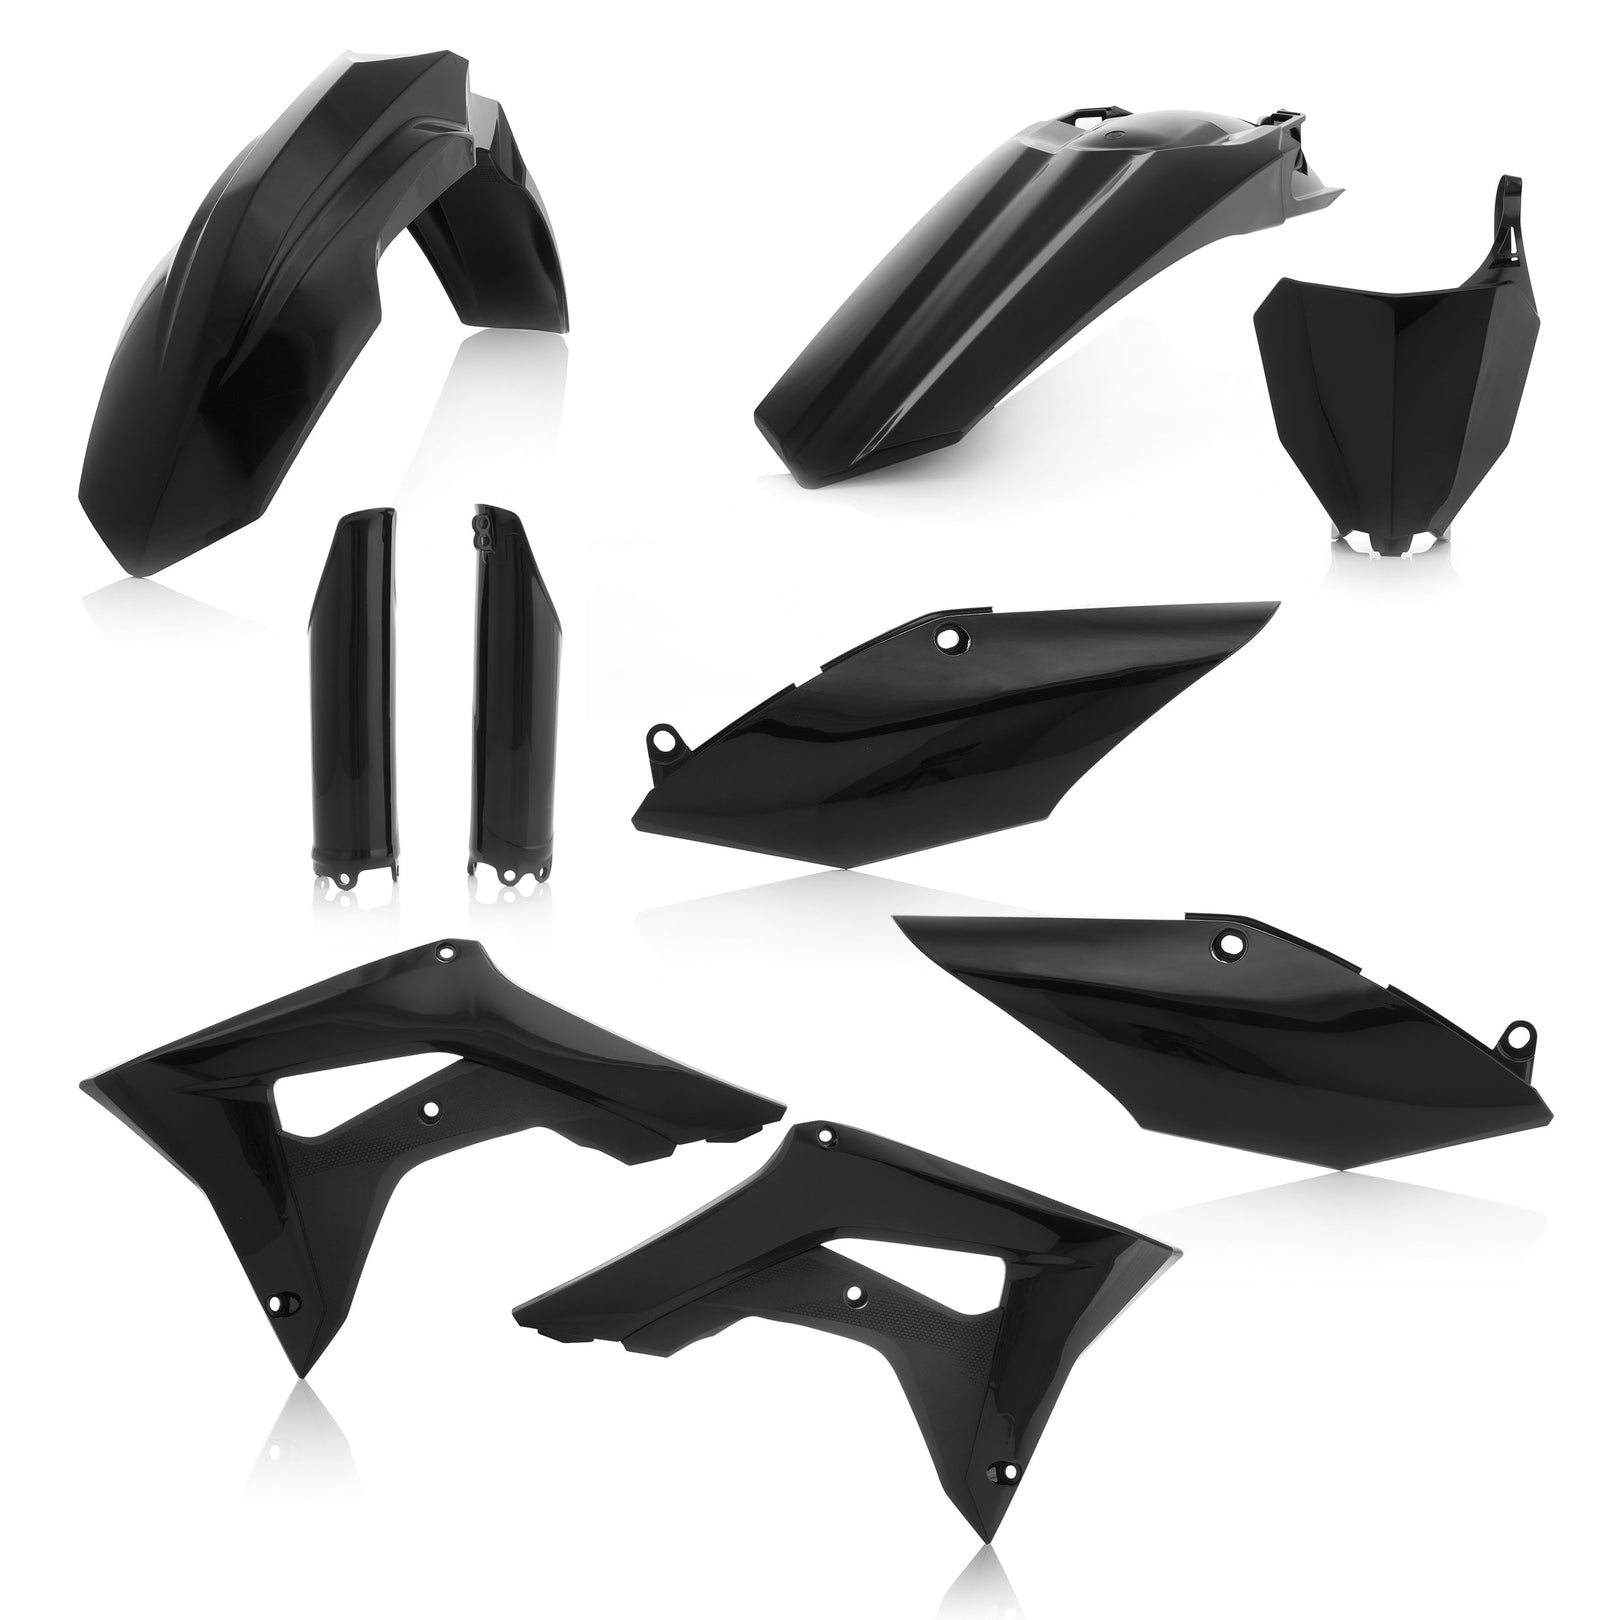 HONDA FULL PLASTIC KIT - BLACK - CRF250R: 18, CRF450R: 17-18 - Acerbis